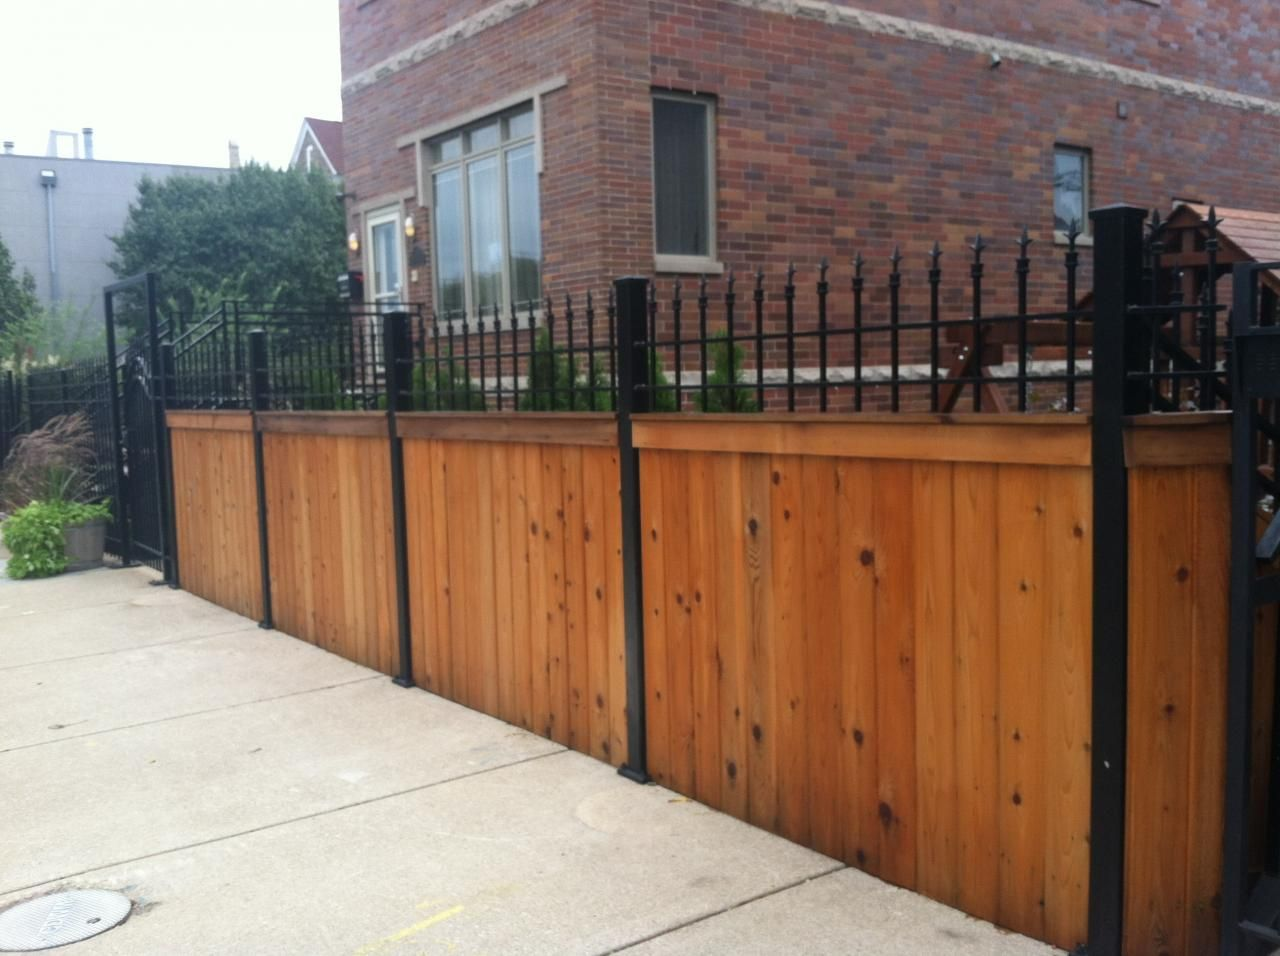 J Franco Steel Porches Wood And Wrought Iron Fences Wood Gate